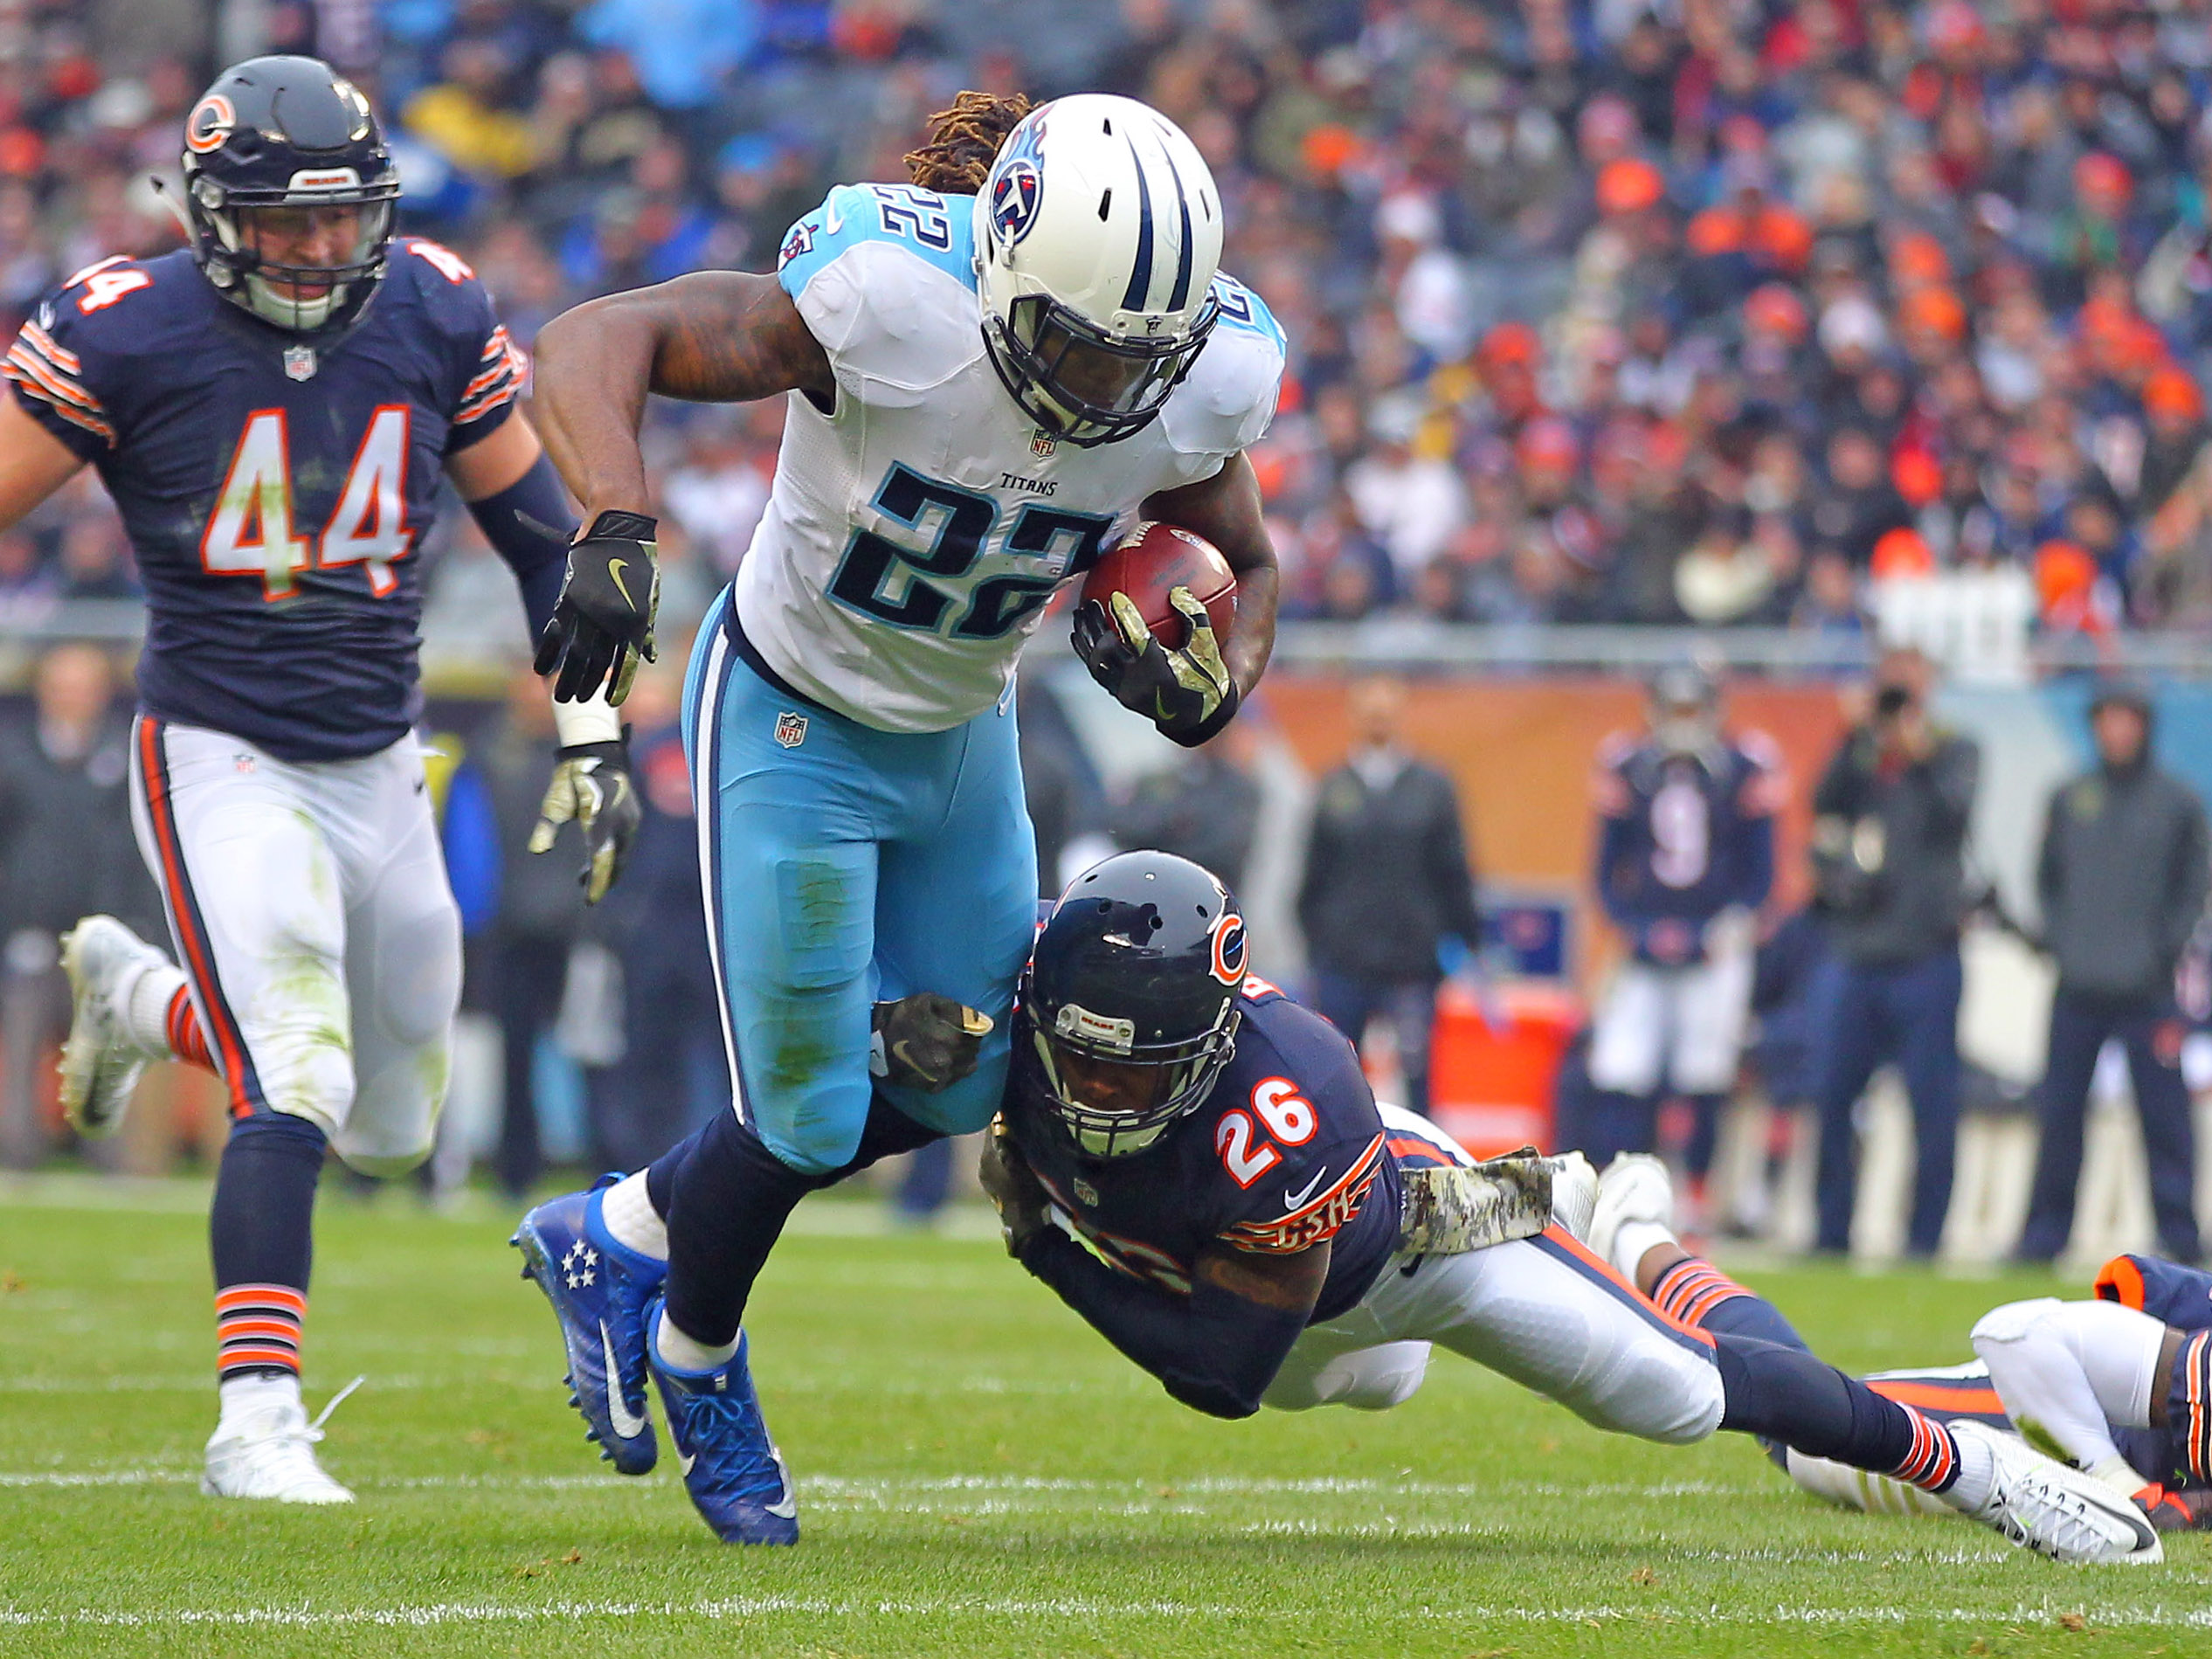 9708904-nfl-tennessee-titans-at-chicago-bears